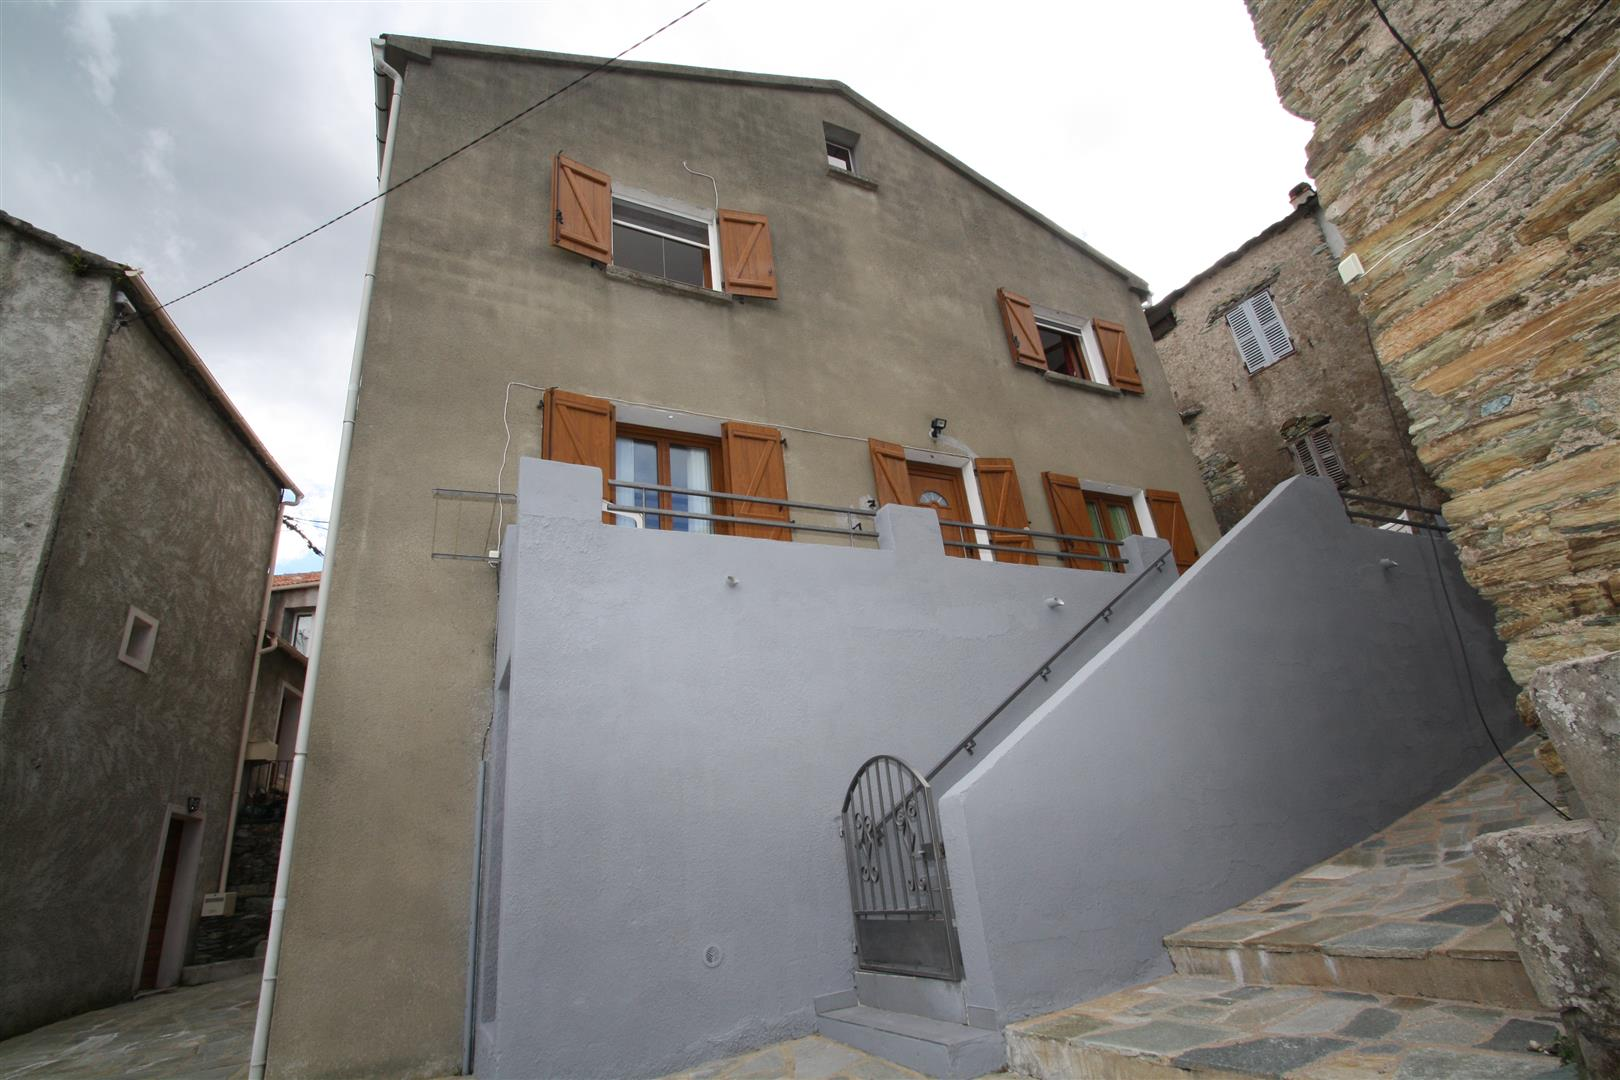 Maison Dhote Cargese Corse